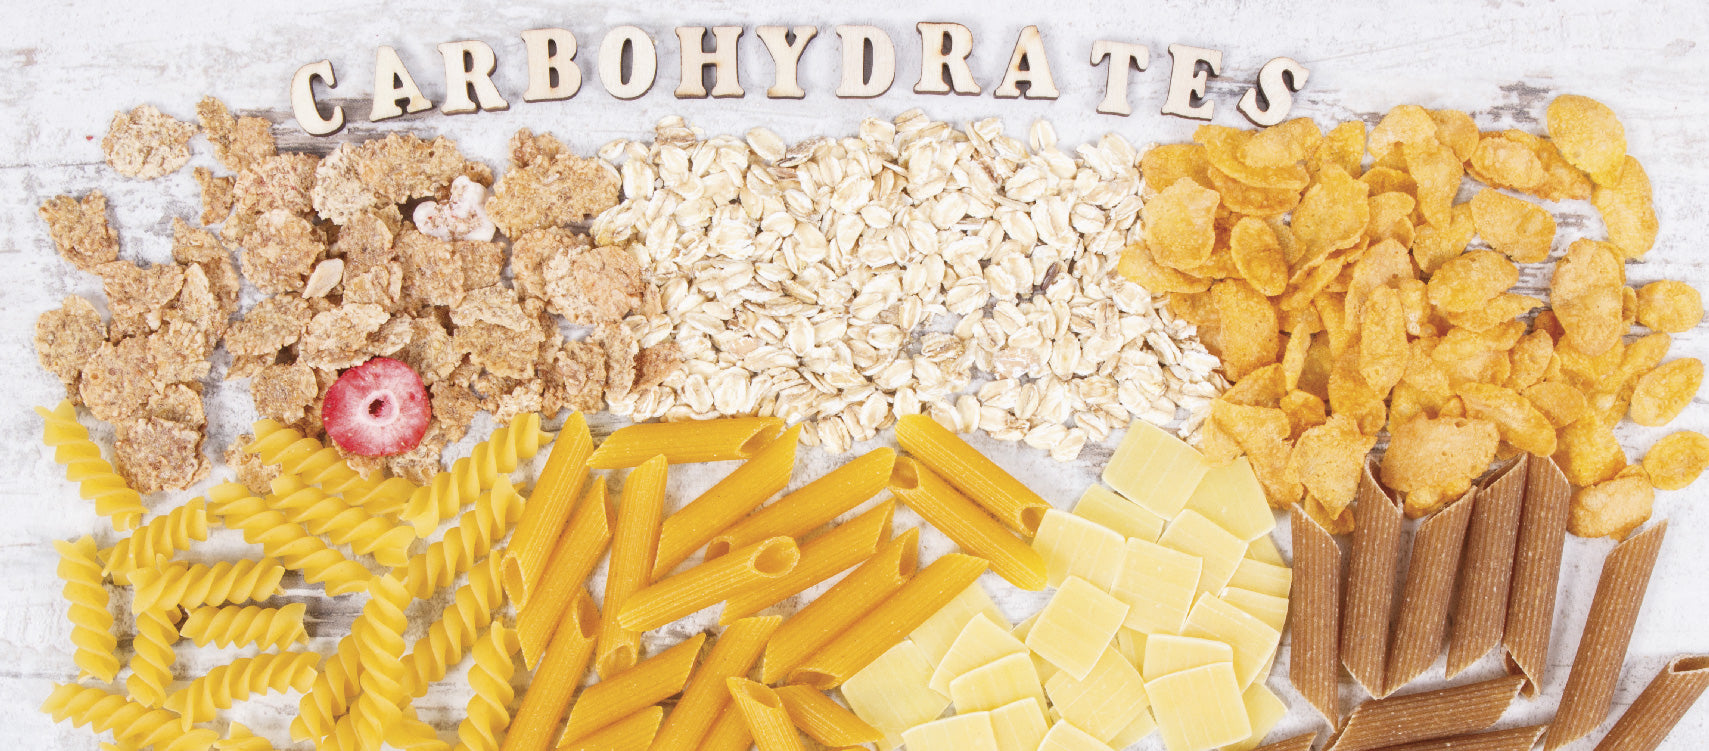 Carbohydrates-rich food like pasta